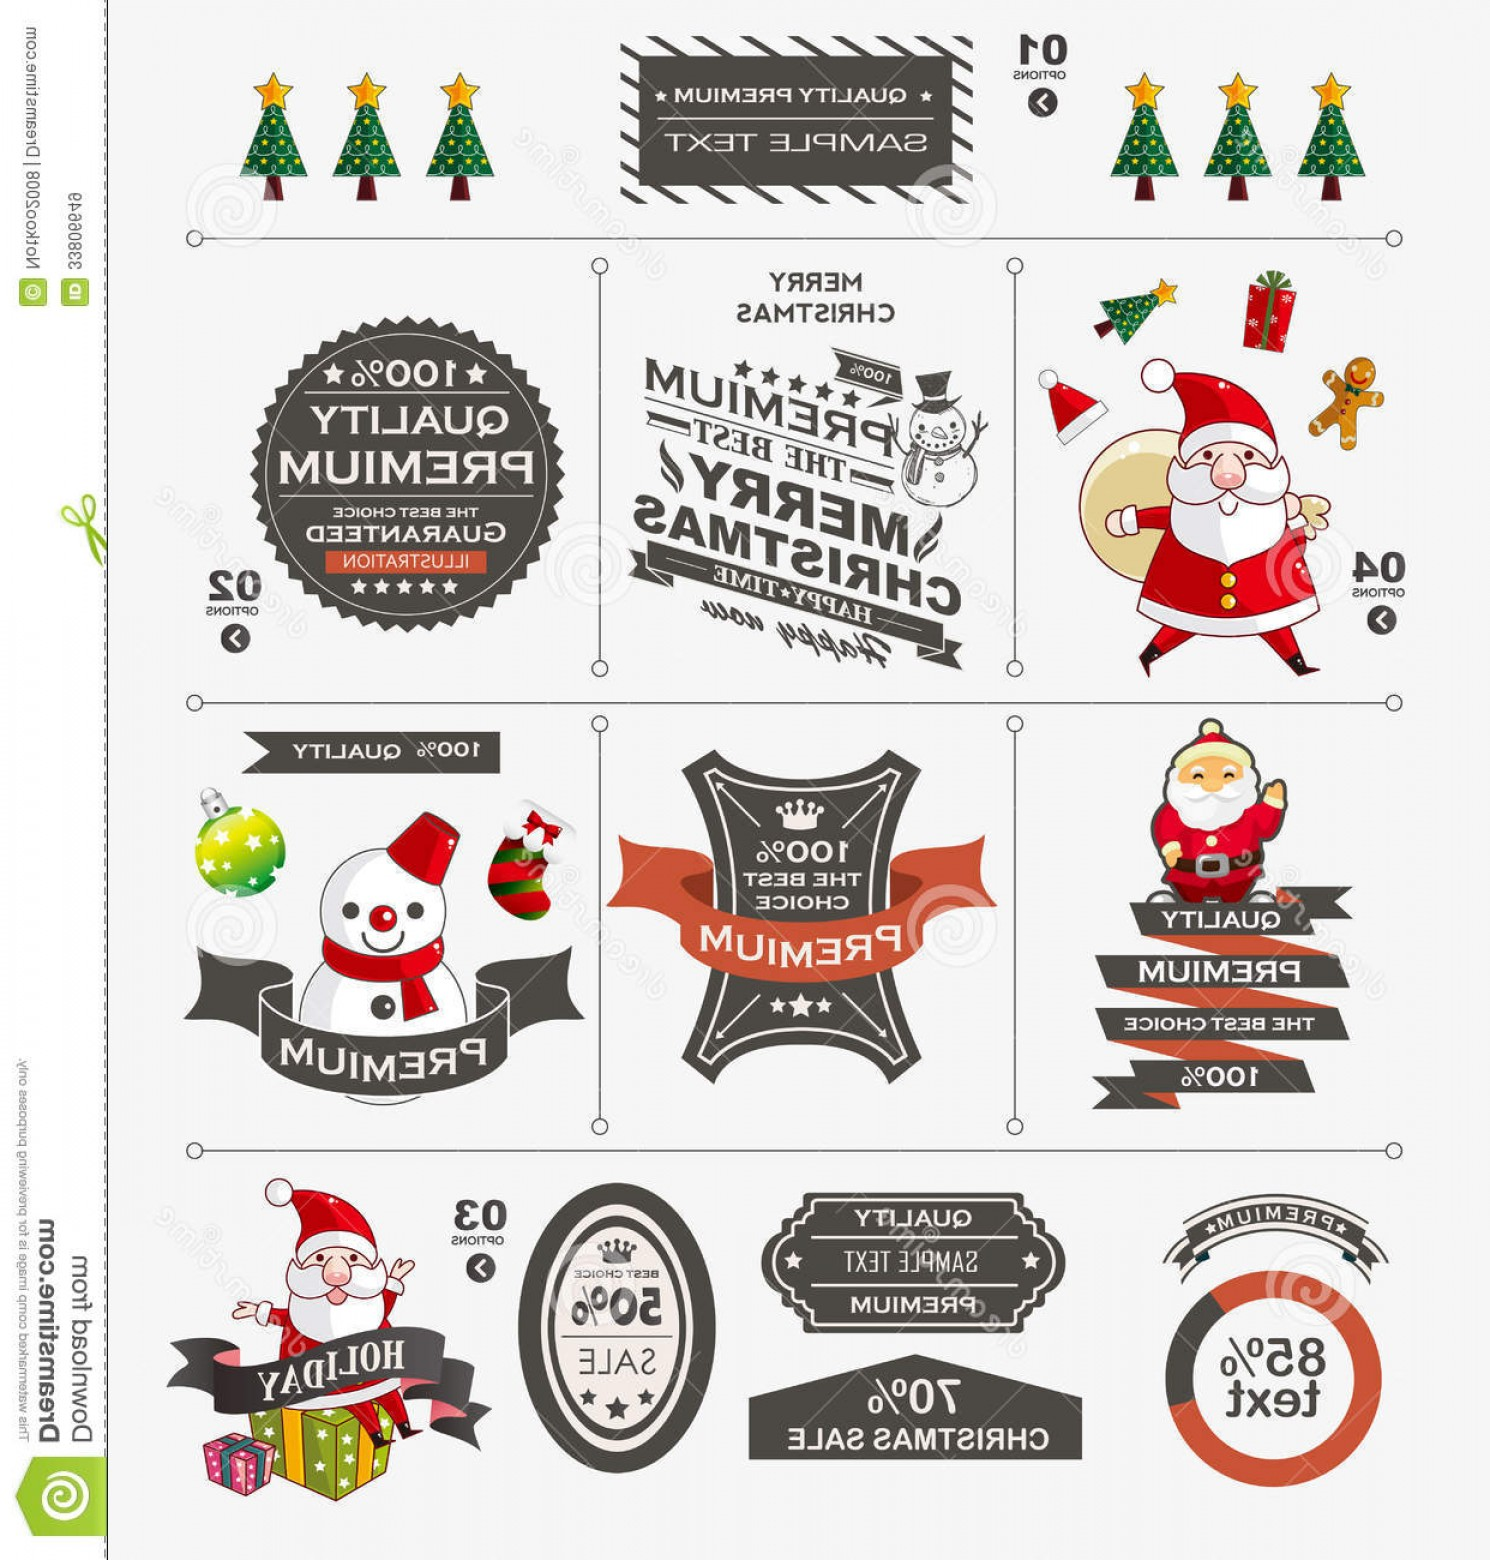 Free Vectors Christmas Vintage Royalty Free Stock Images Christmas Vintage